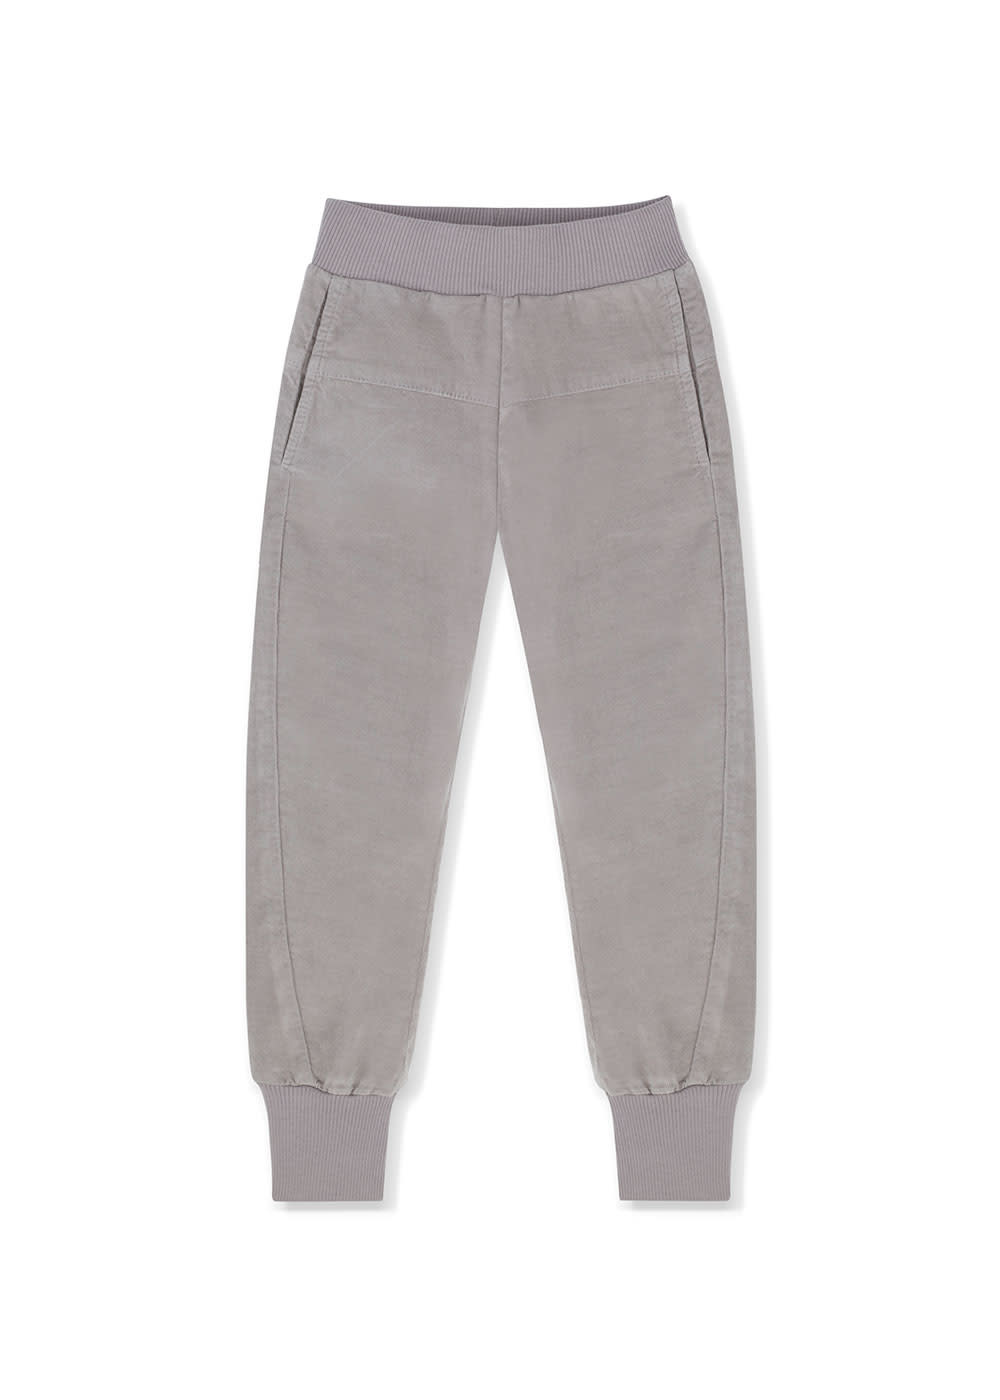 Kids on the moon Kids on the moon - Grey cord joggers